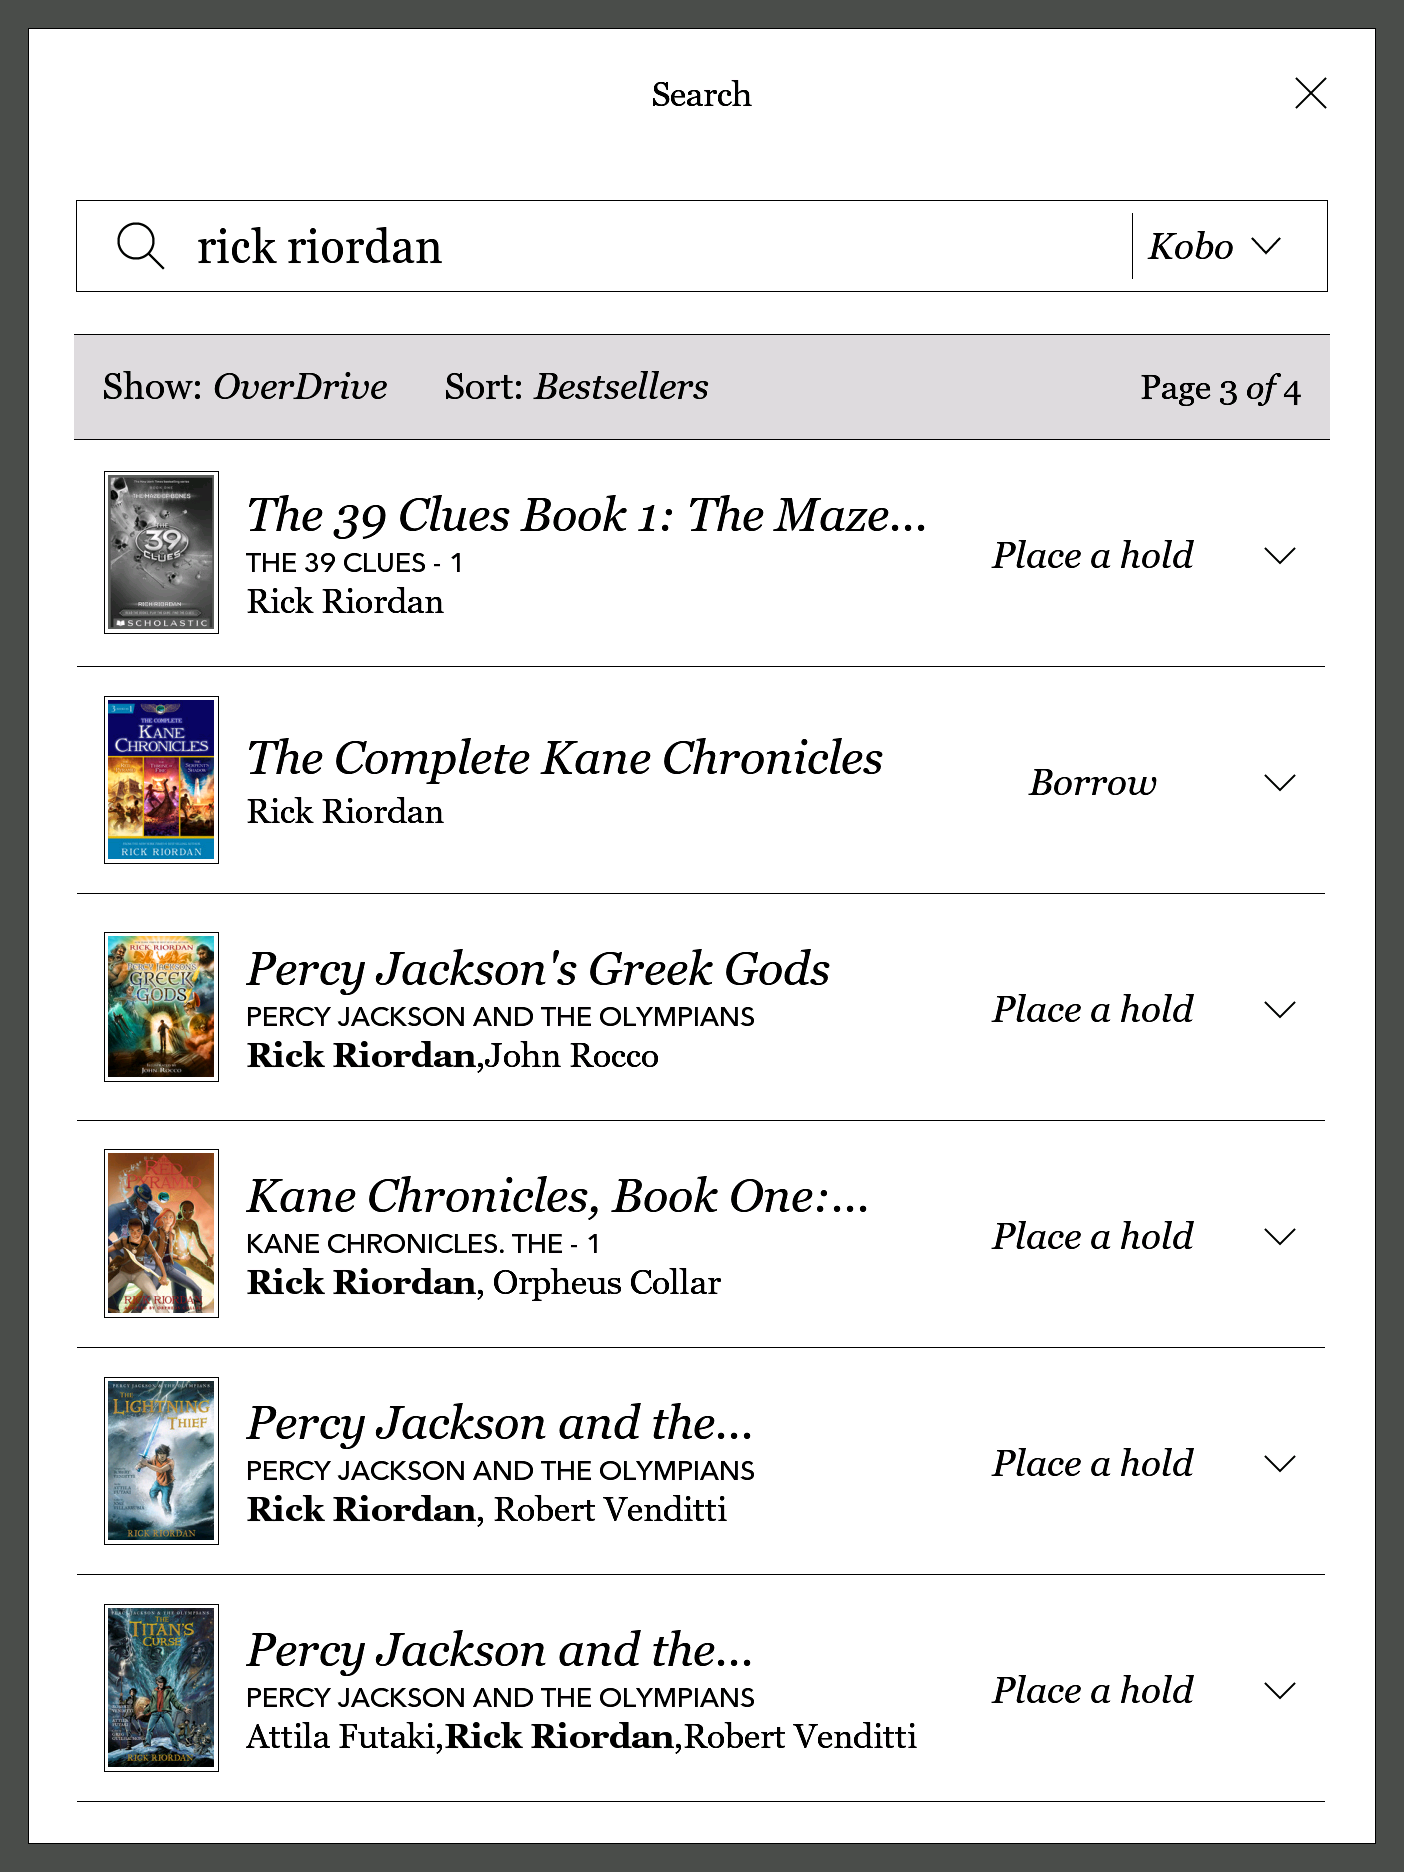 Kobo Aura ONE and Overdrive/library books - MobileRead Forums